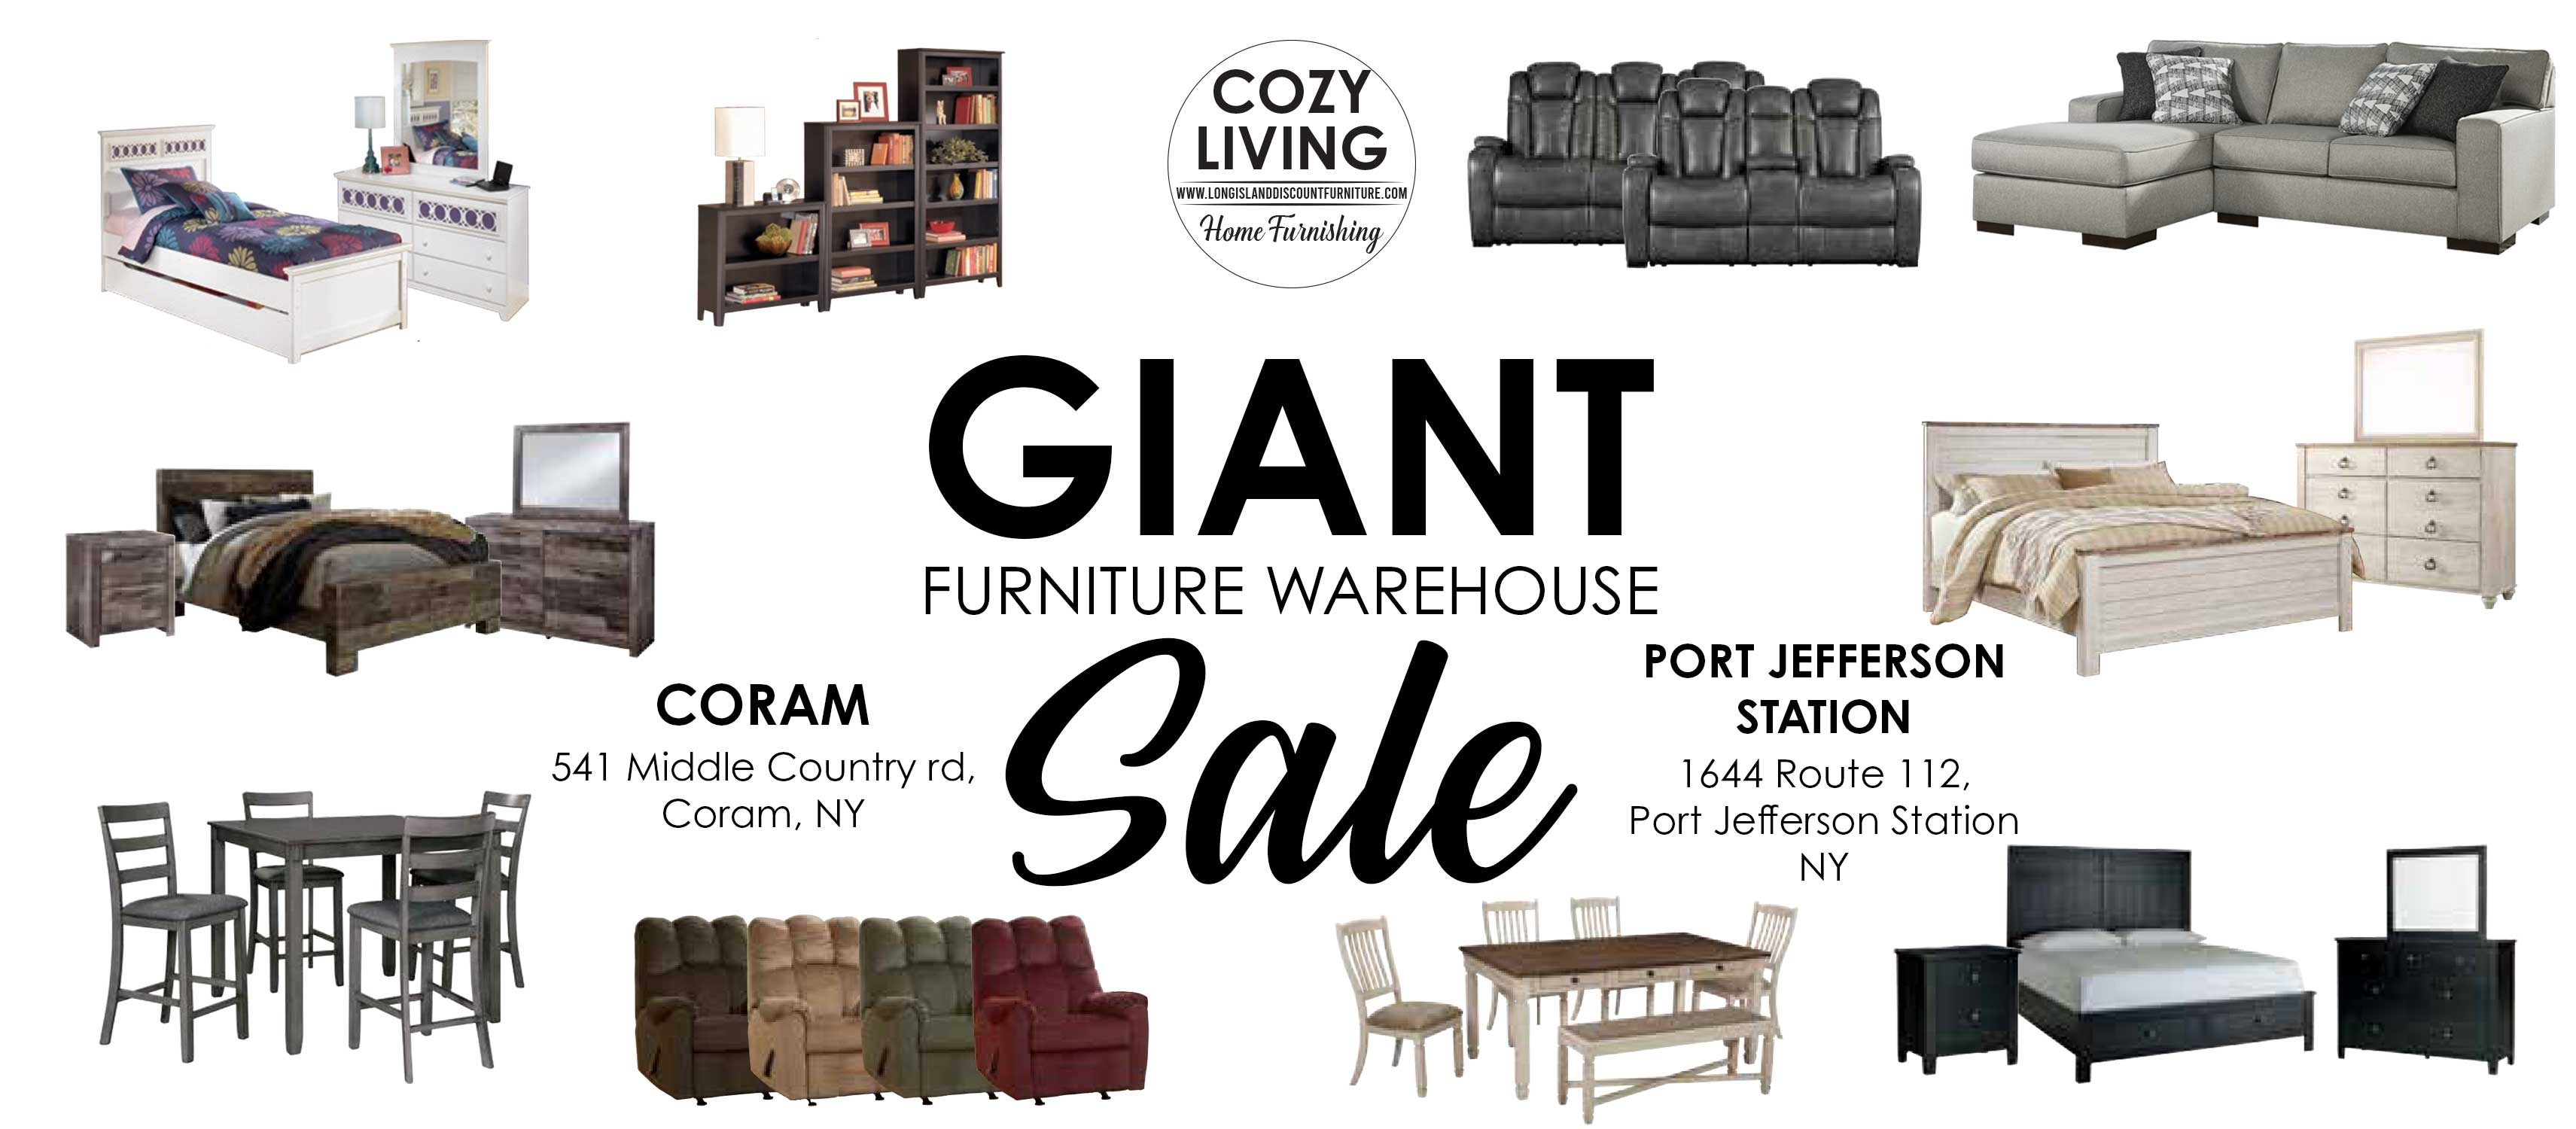 Long Island Discount Furniture Store In Coram Ny